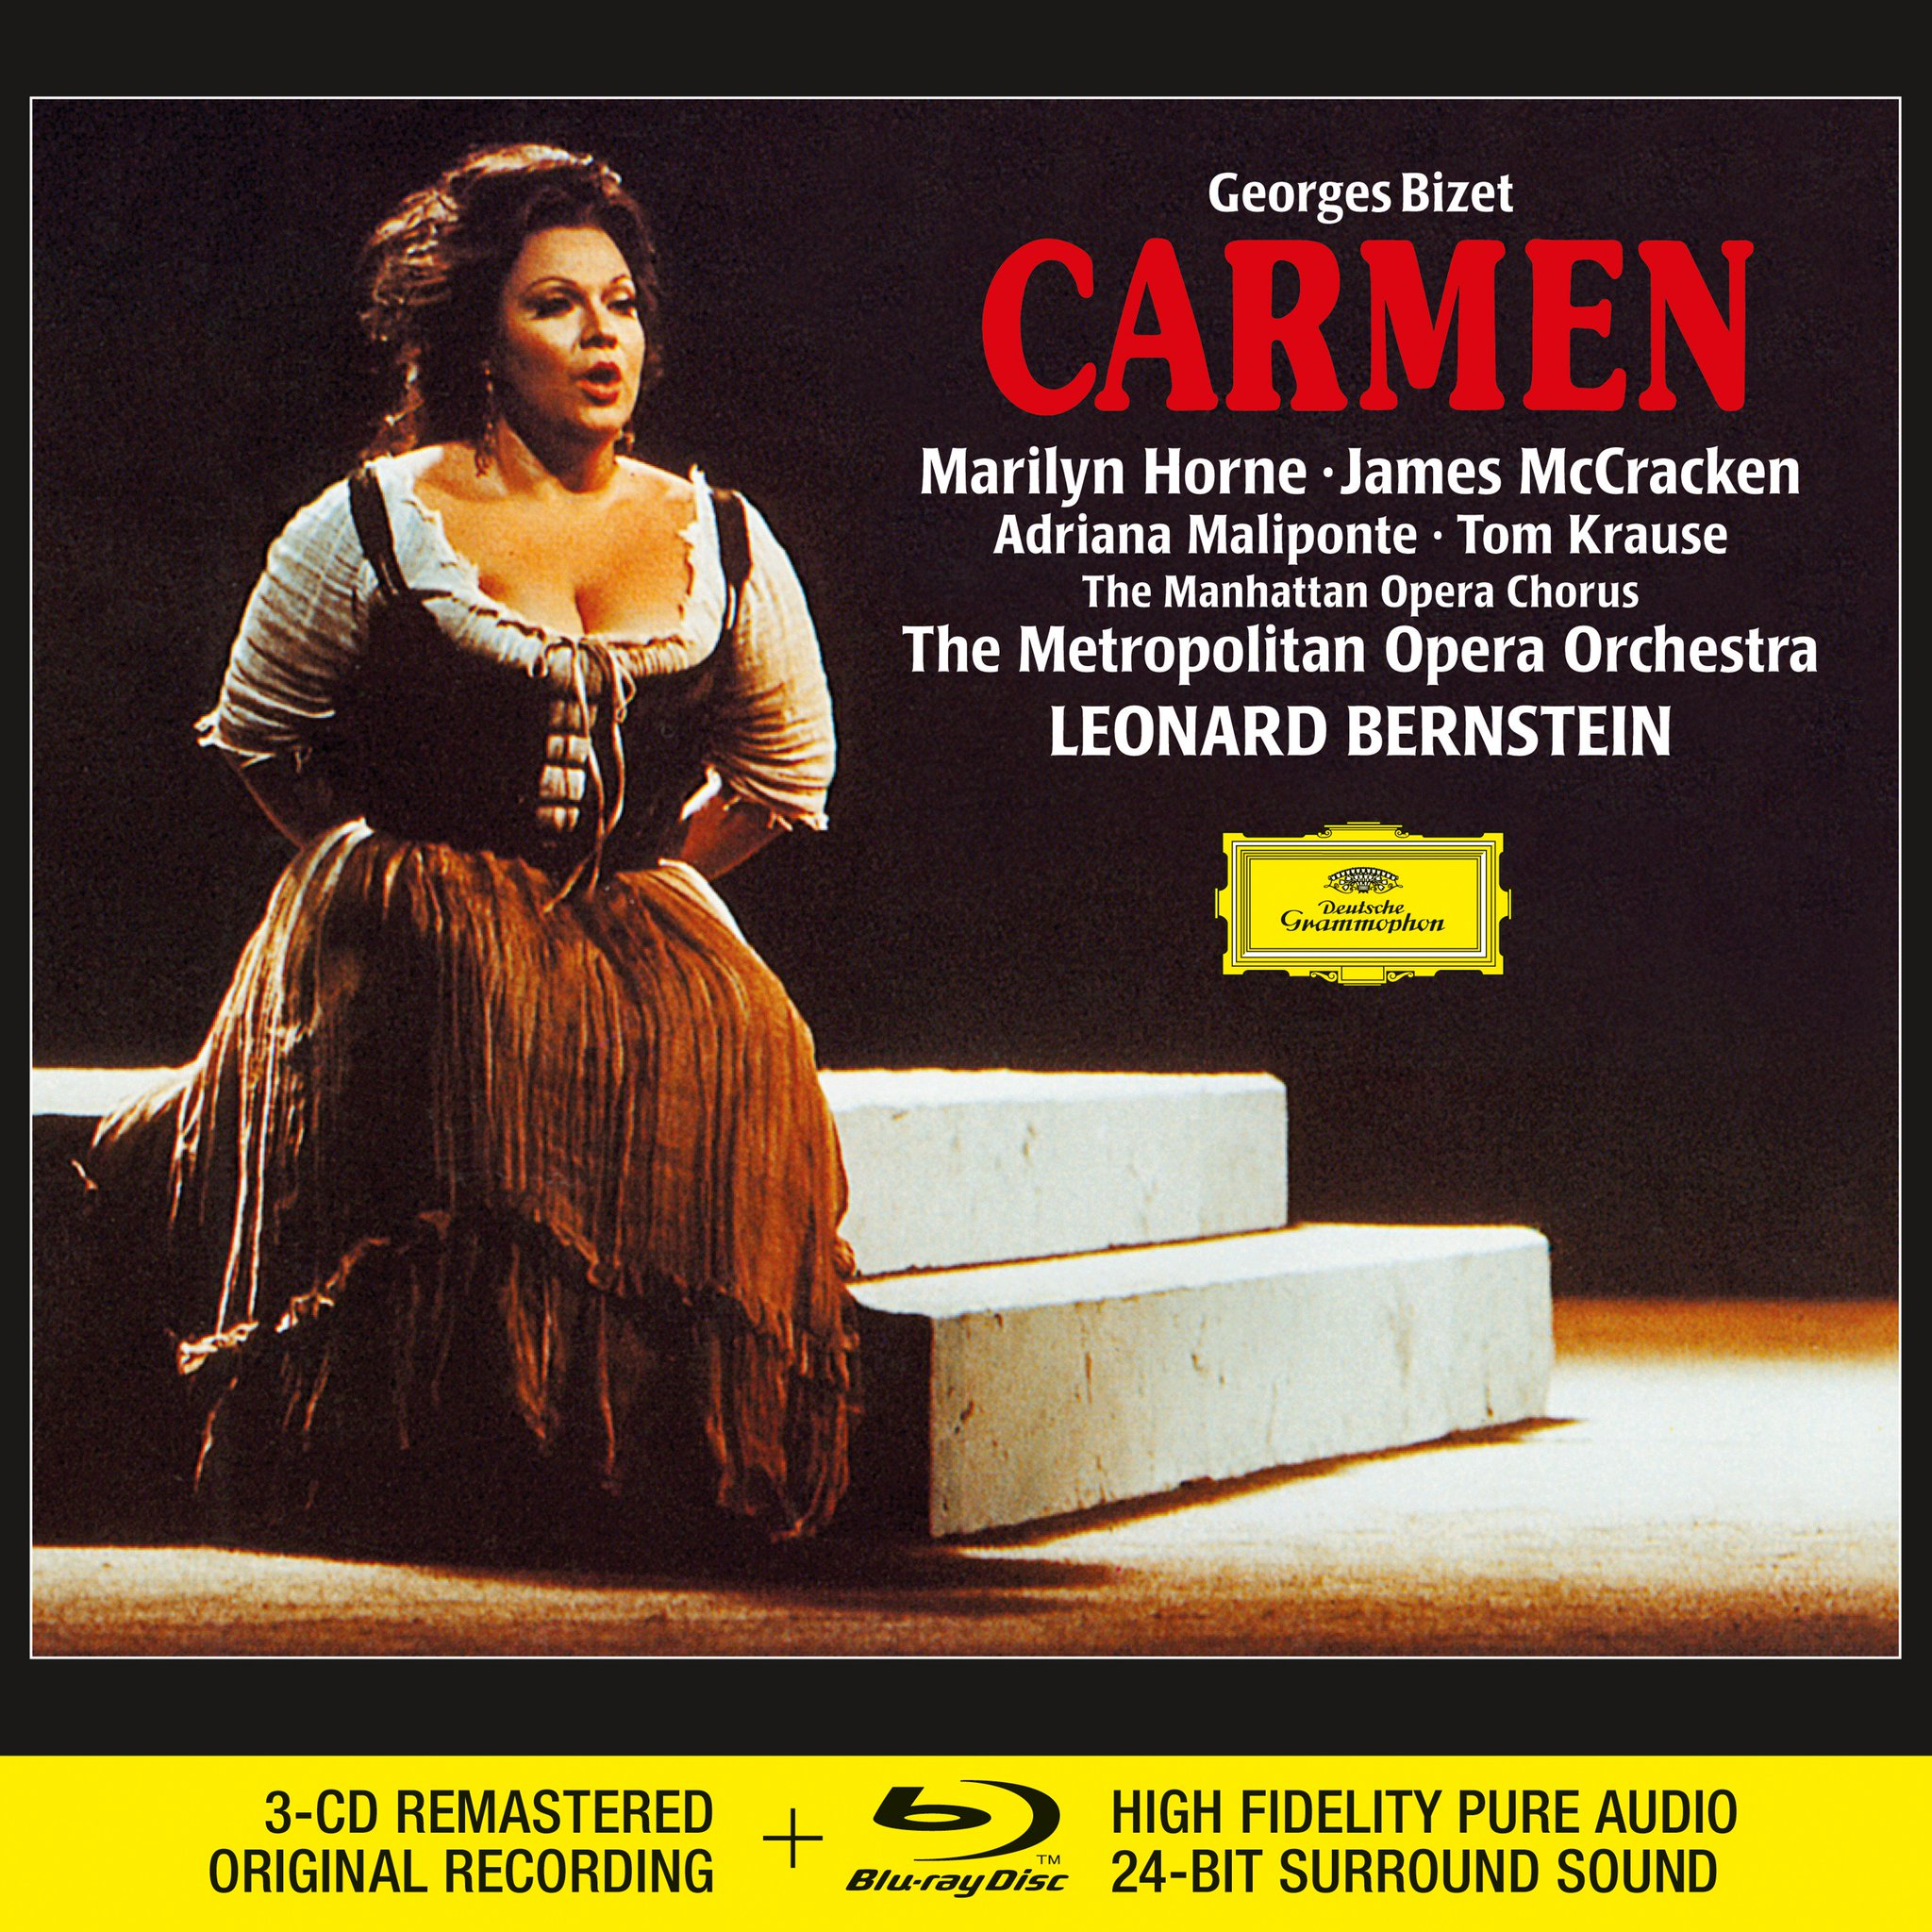 Reloaded twaddle – RT @DGclassics: We continue our Hardback Opera Series and the Bernstein Centenar...